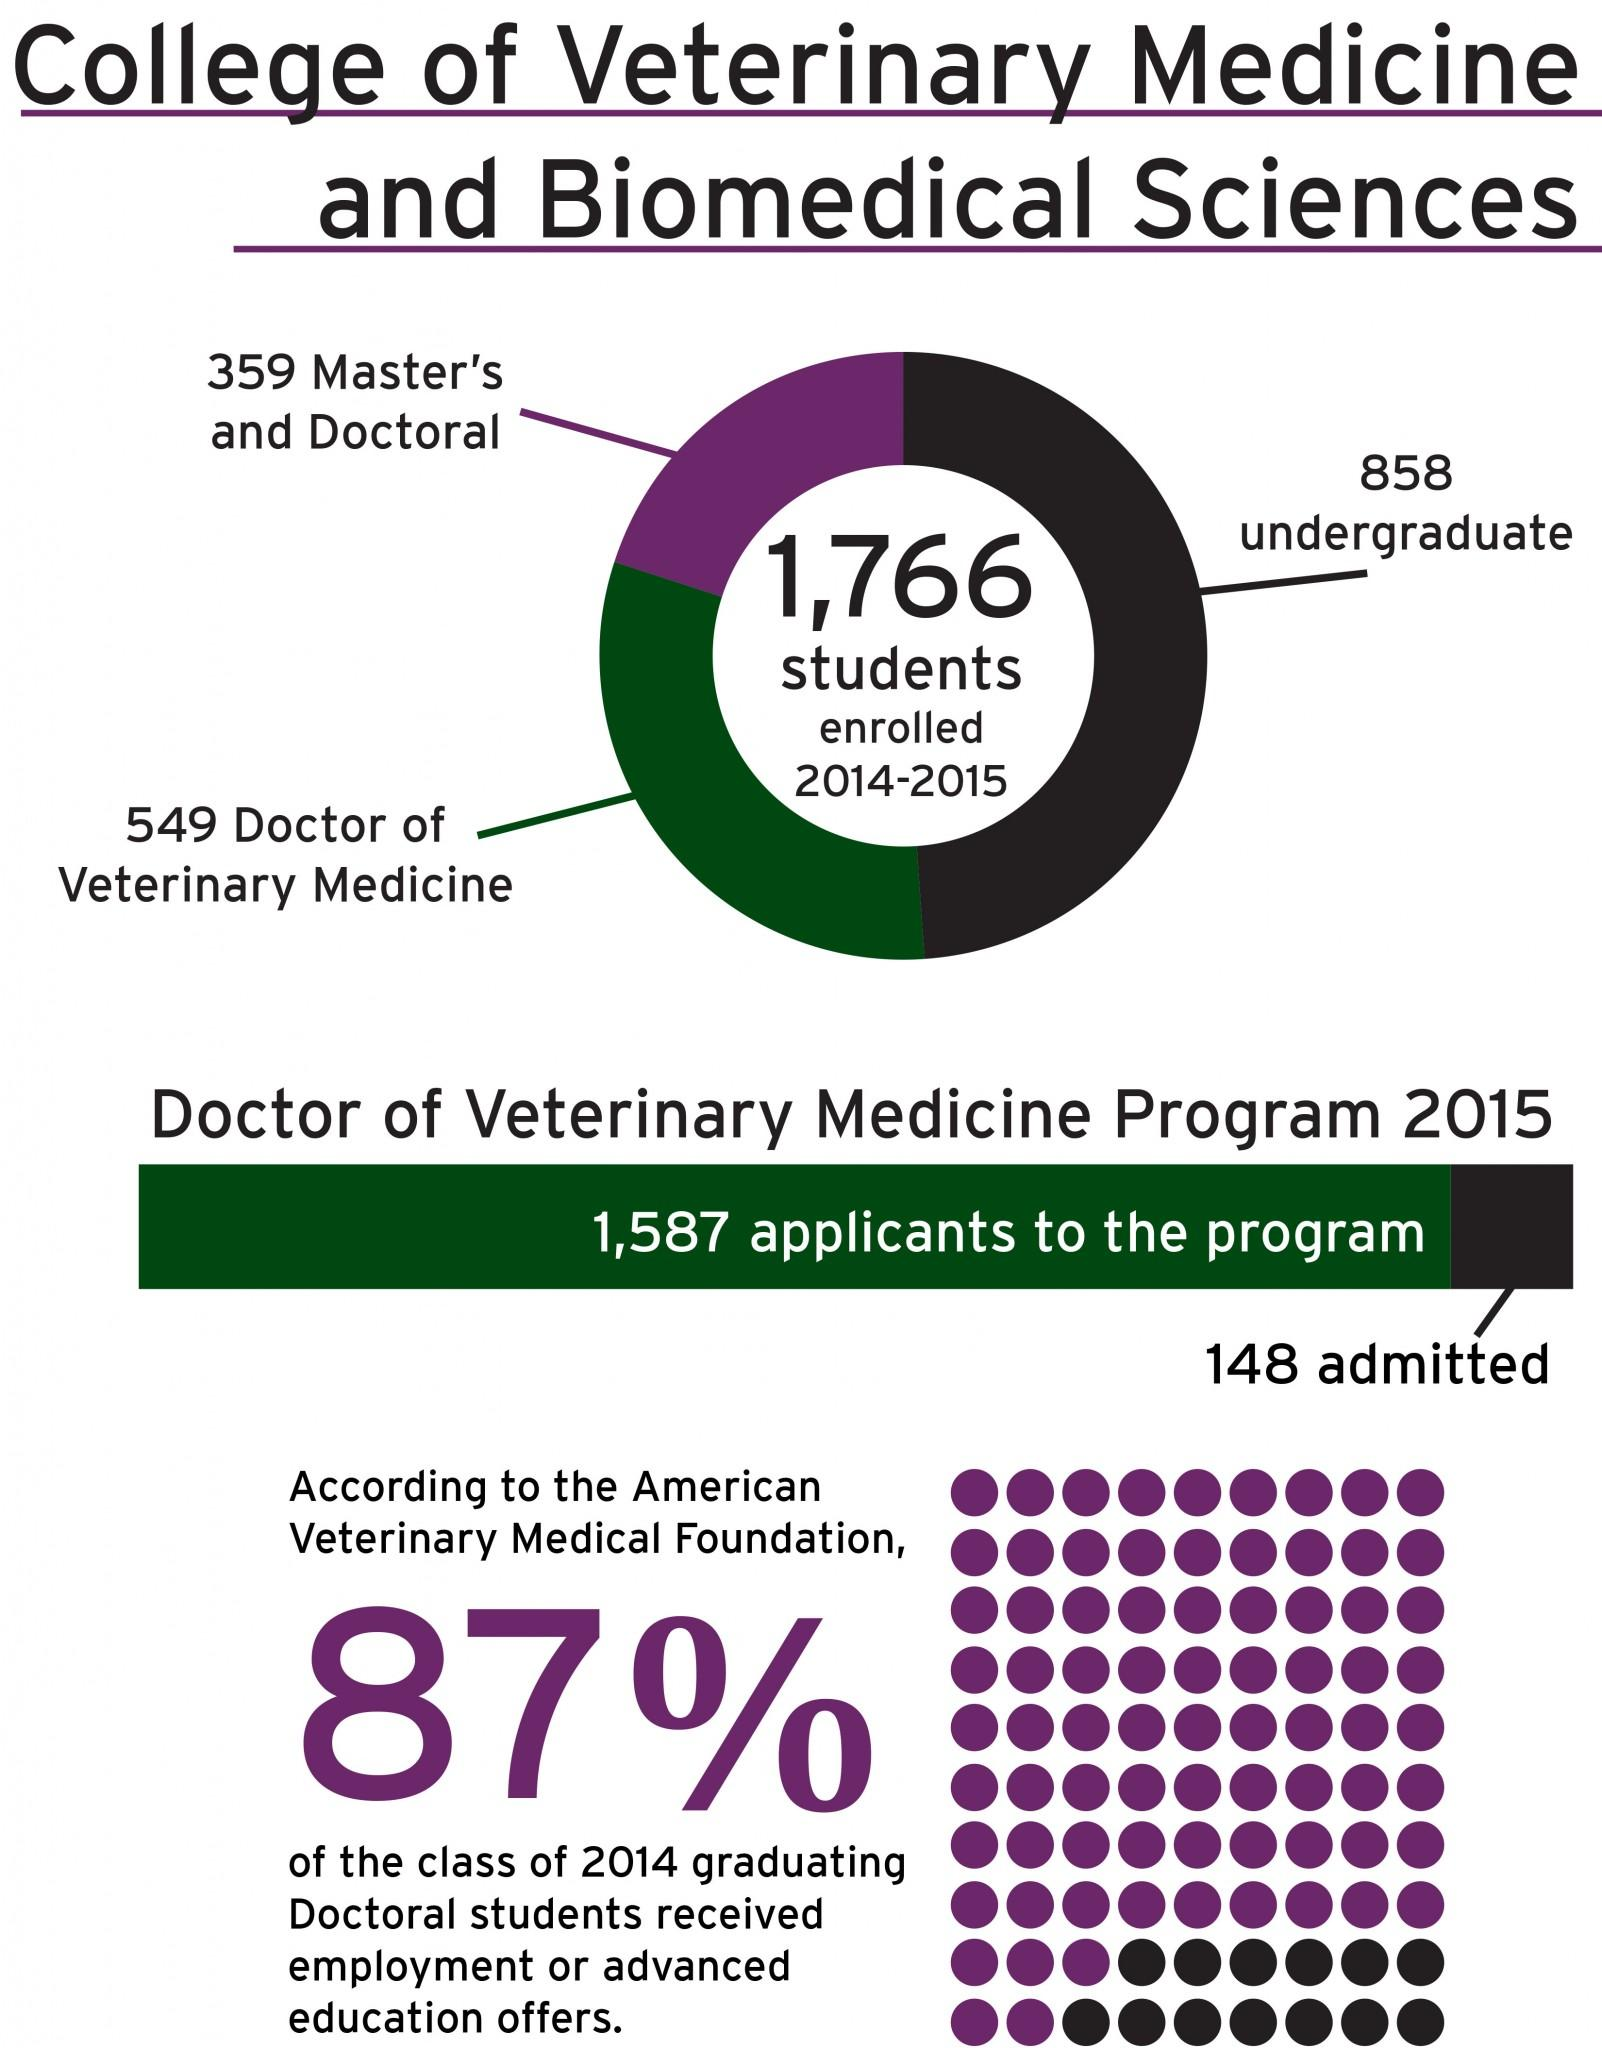 By the numbers: College of Veterinary Medicine and